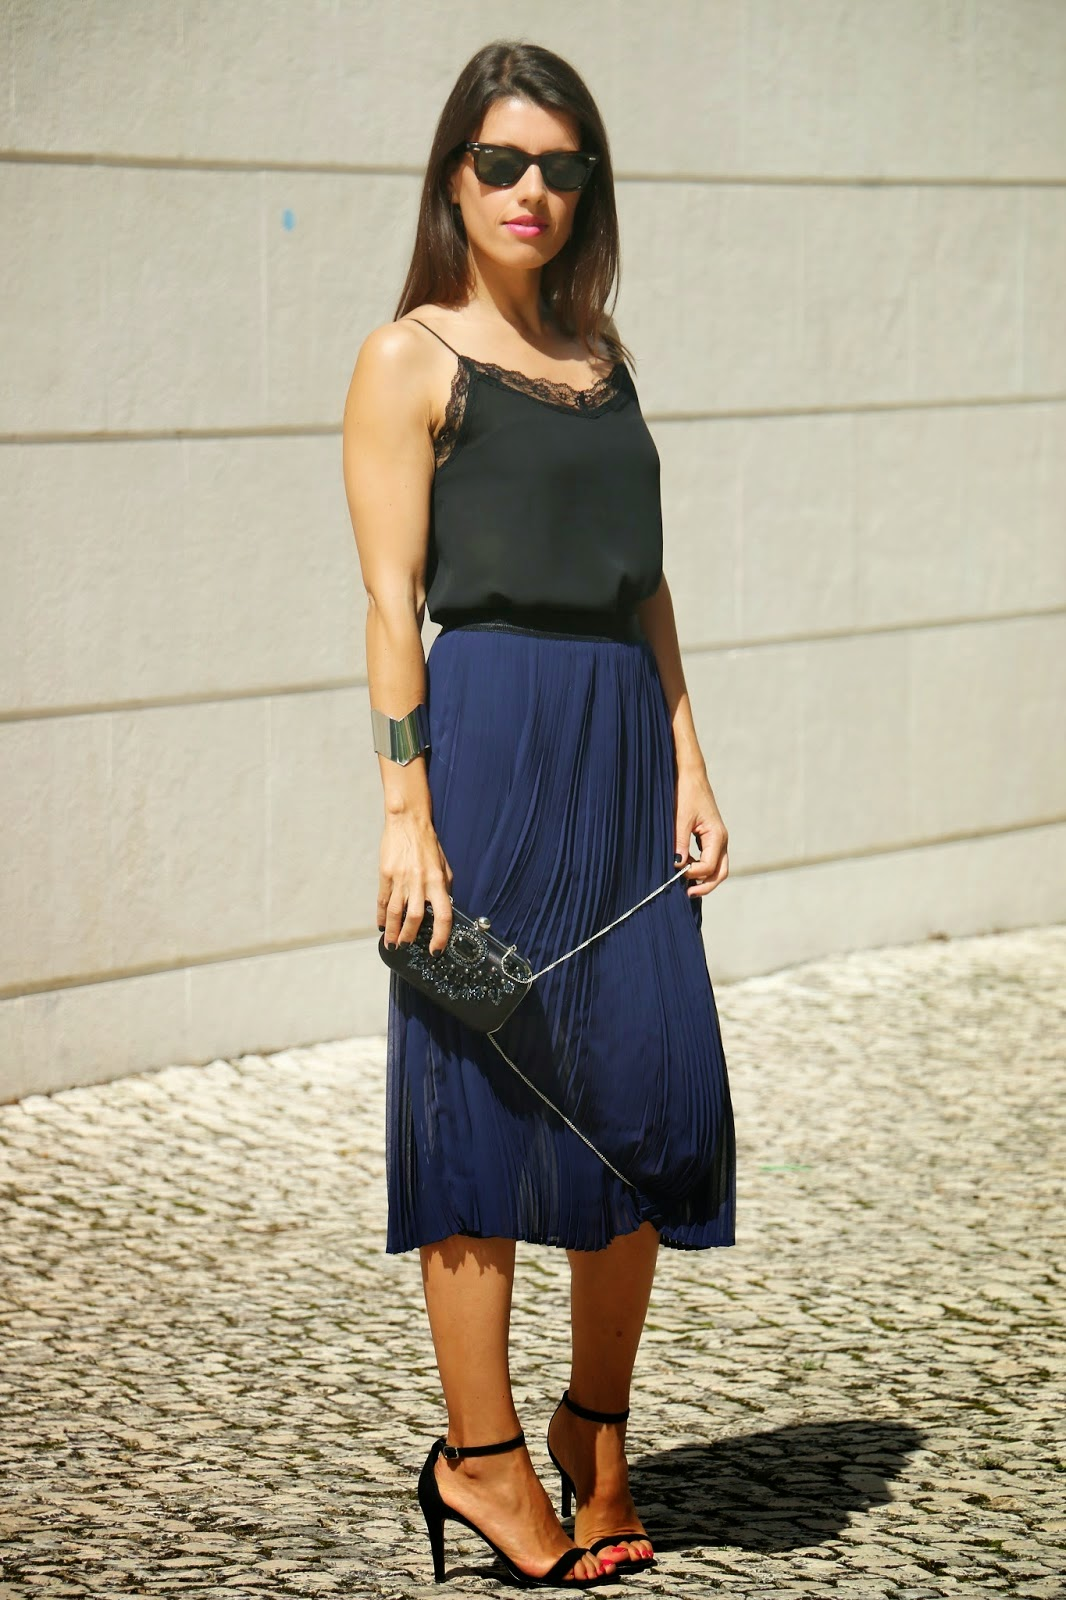 http://ilovefitametrica.blogspot.pt/2014/09/special-party-special-look.html